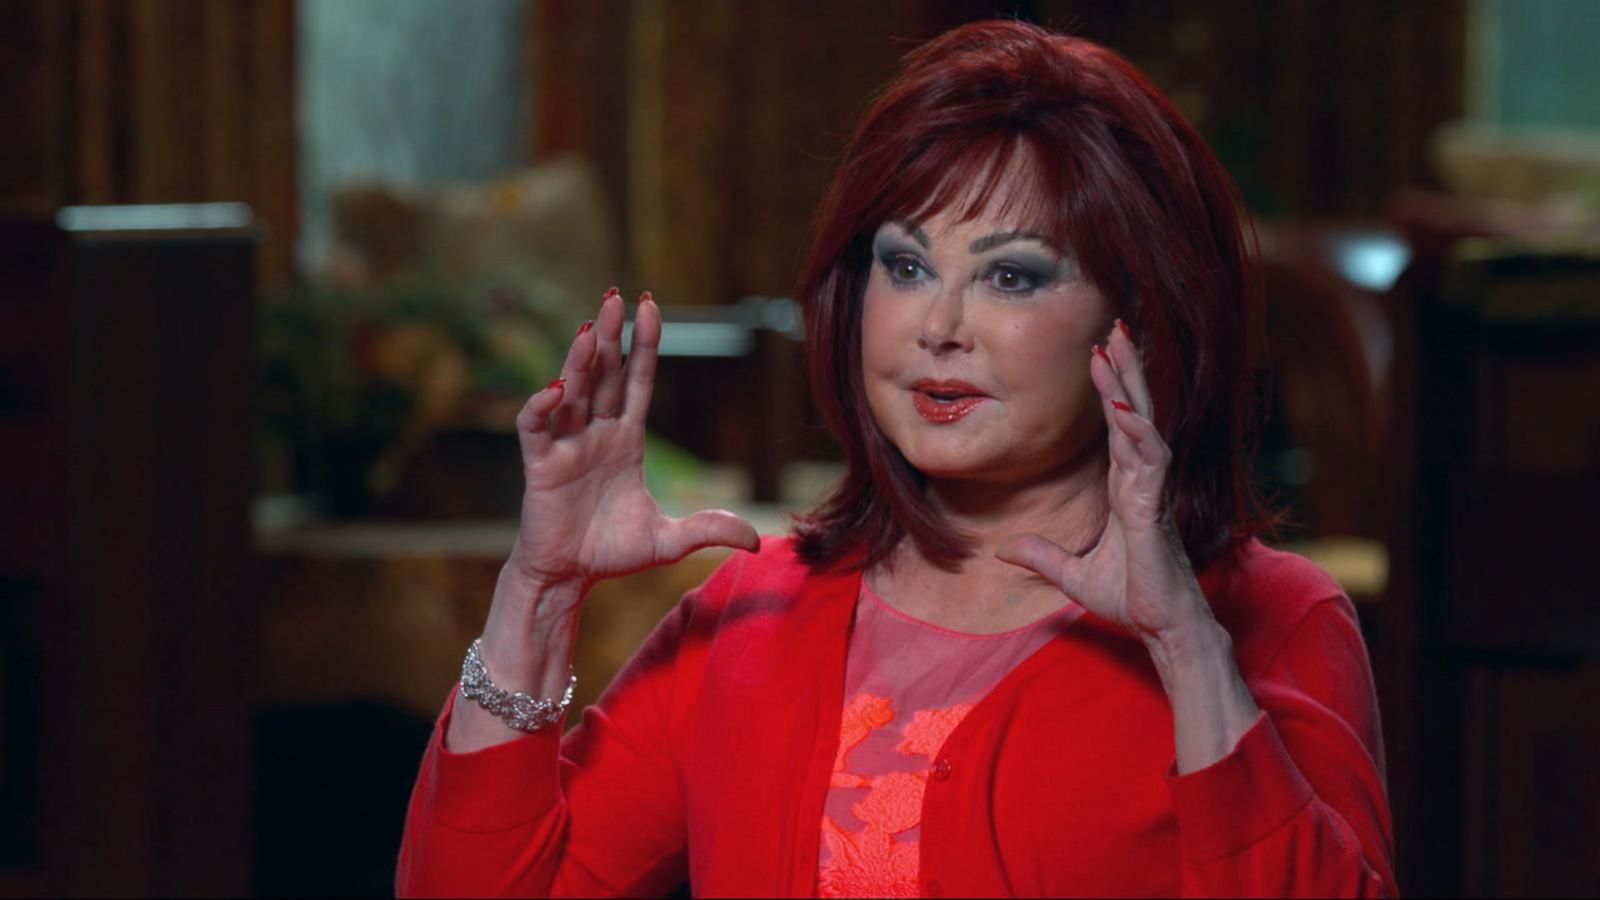 VIDEO: Naomi Judd Discusses Fighting Depression in Her New Book 'River of Time'